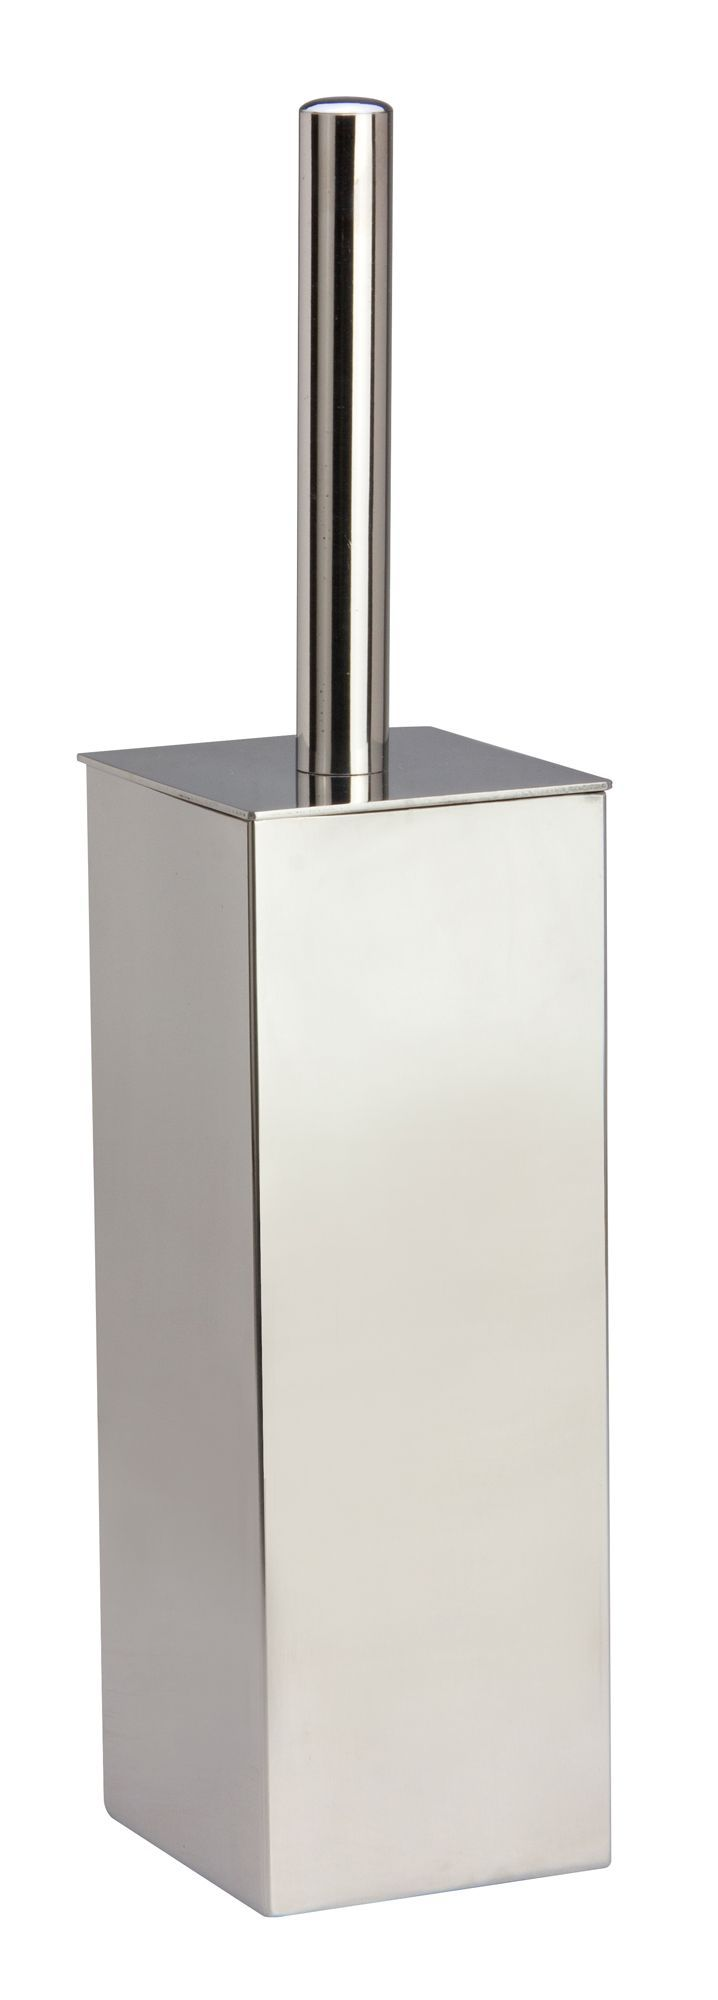 Cooke & Lewis Silver Chrome Effect Toilet Brush Holder